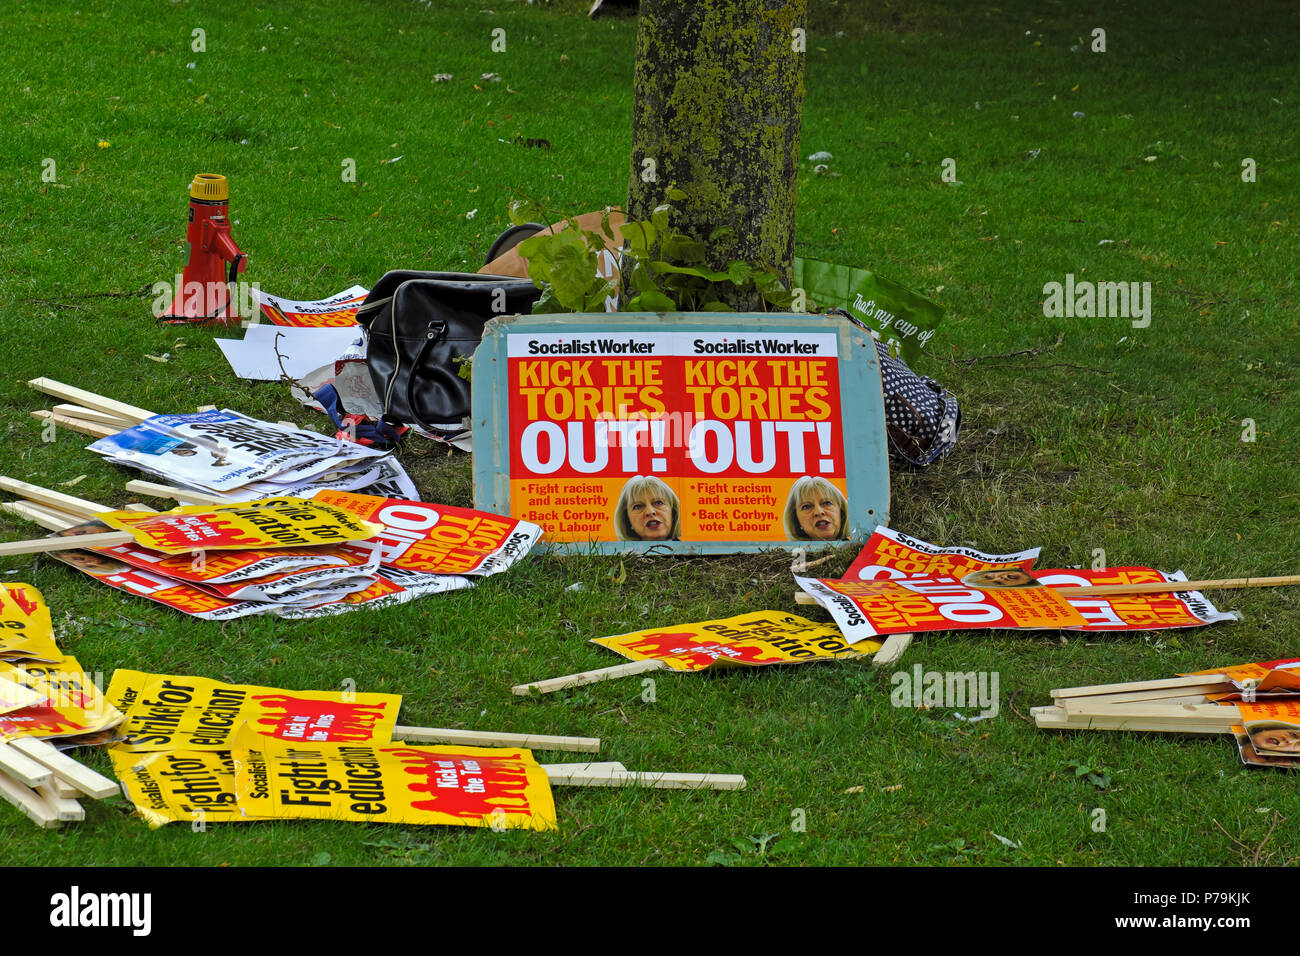 Placards on the ground before a demonstration held on College Green, Bristol, UK on 10 June 2017 in the wake of the general election - Stock Image